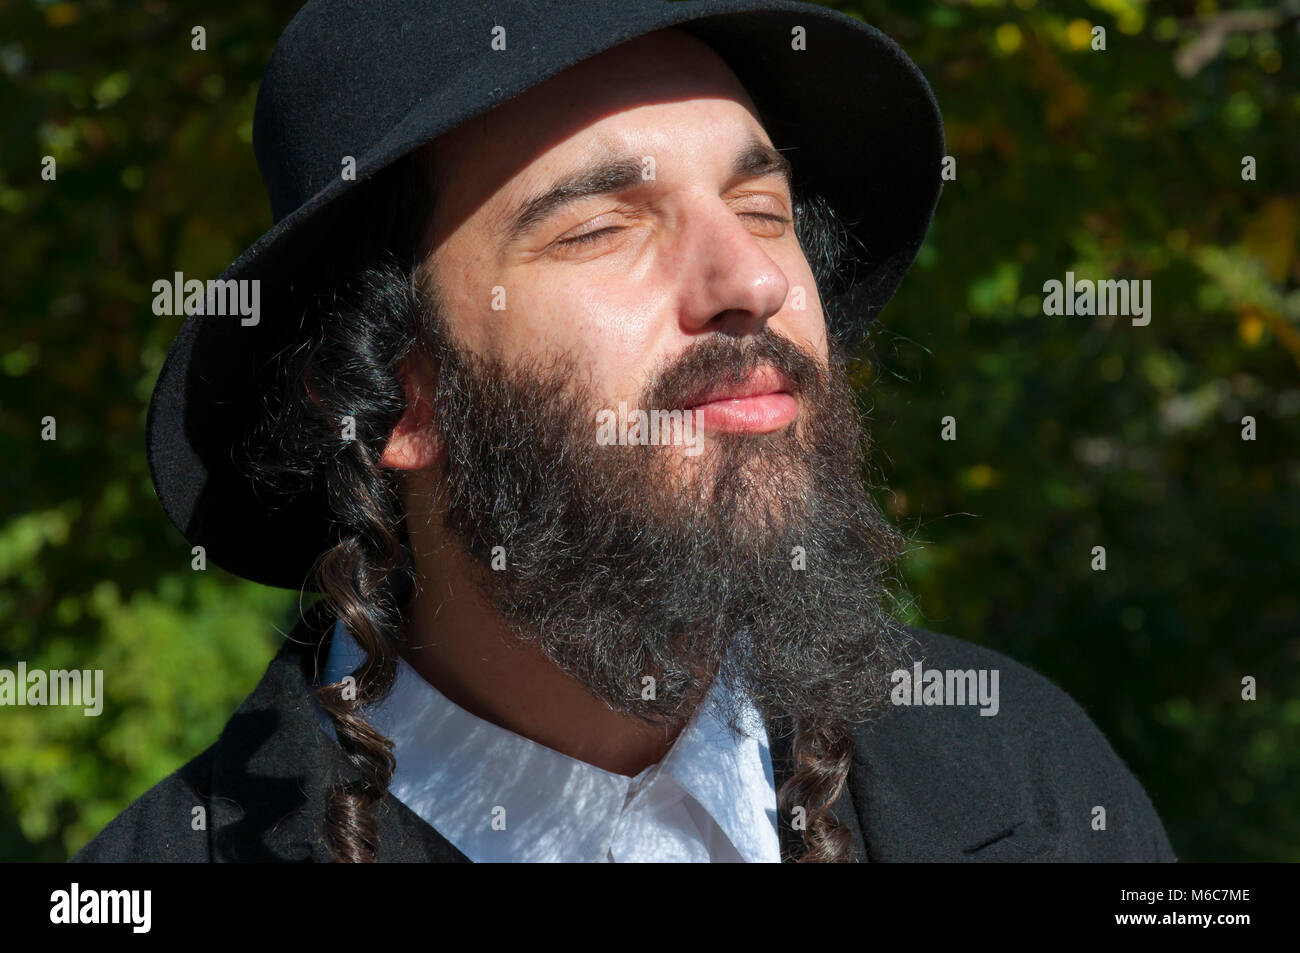 e331f566bb5 Outdoor sunny bright portrait of a young traditional orthodox Jewish man  with eyes closed with black